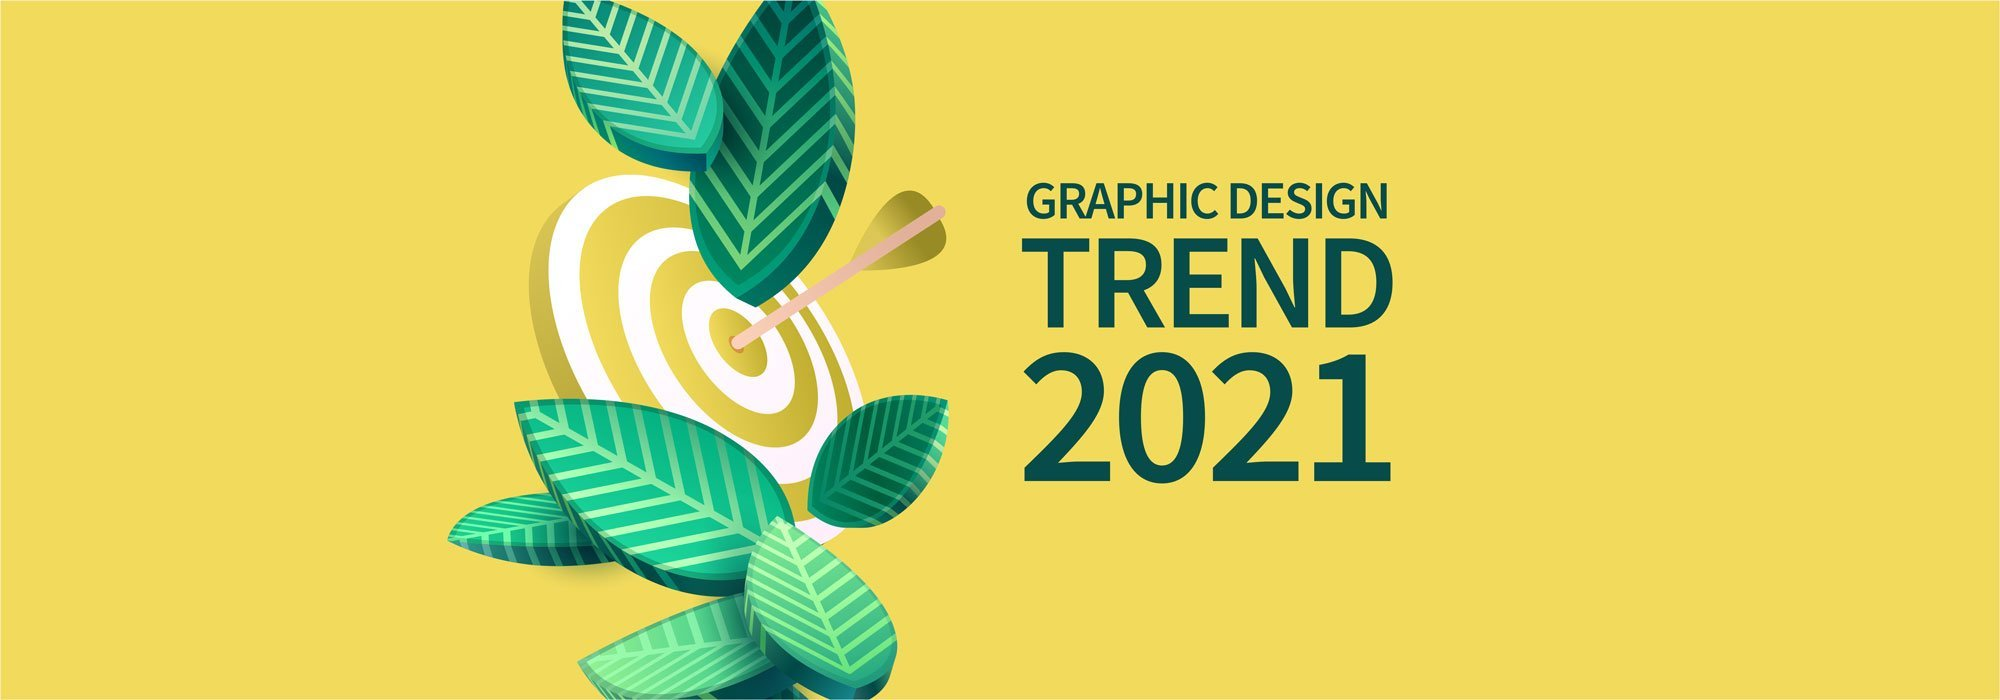 10 trend di visual e graphic design del 2021